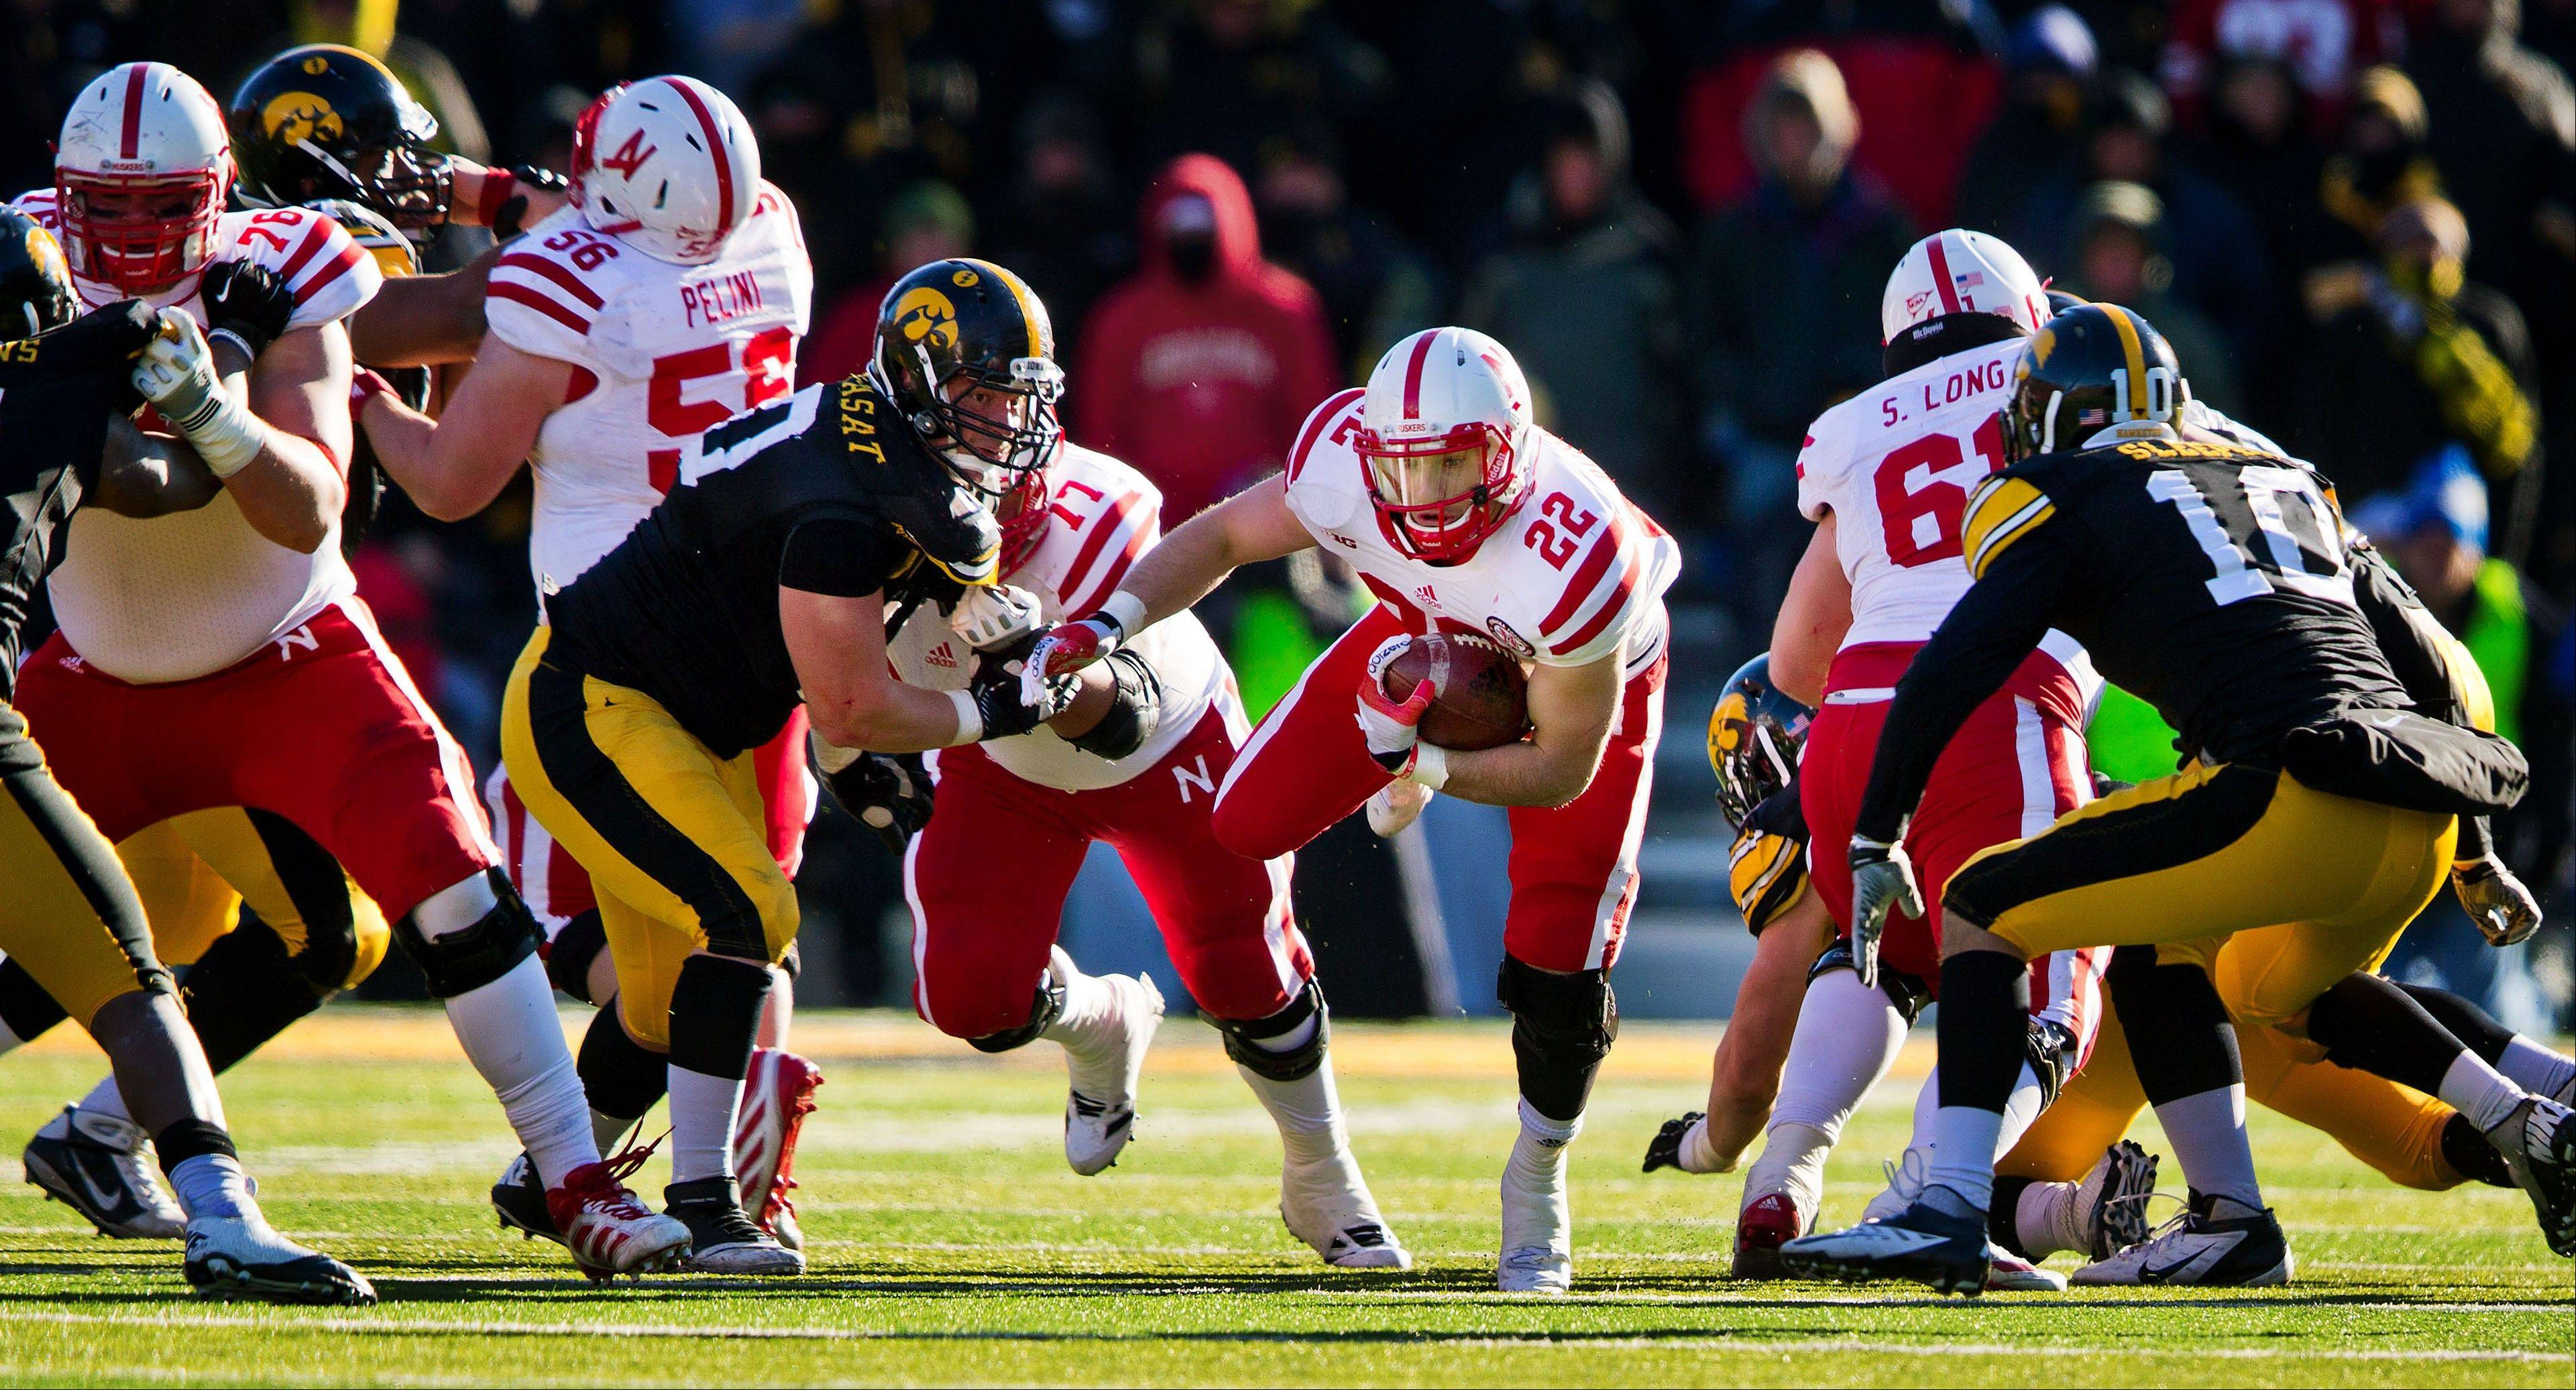 Nebraska's Rex Burkhead (22) runs for a first down with defensive pressure from Iowa's Louis Trinca-Pasat, center left, and Collin Sleeper, right, Friday during the second half in Iowa City, Iowa. Nebraska won 13-7.